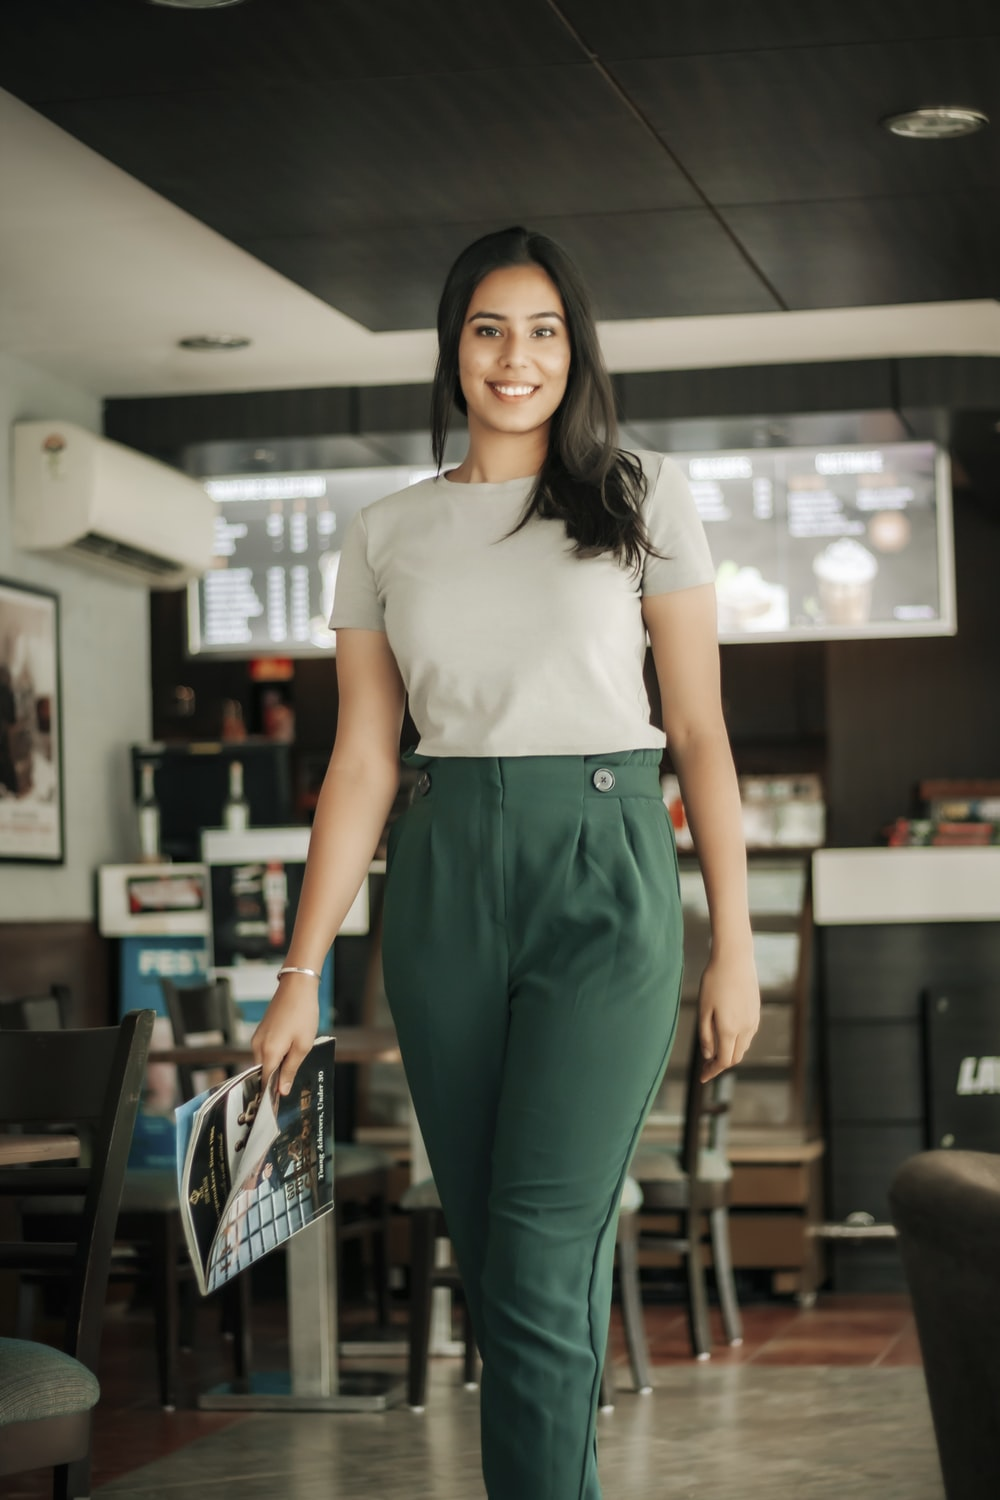 woman in white shirt and green pants standing near black chair